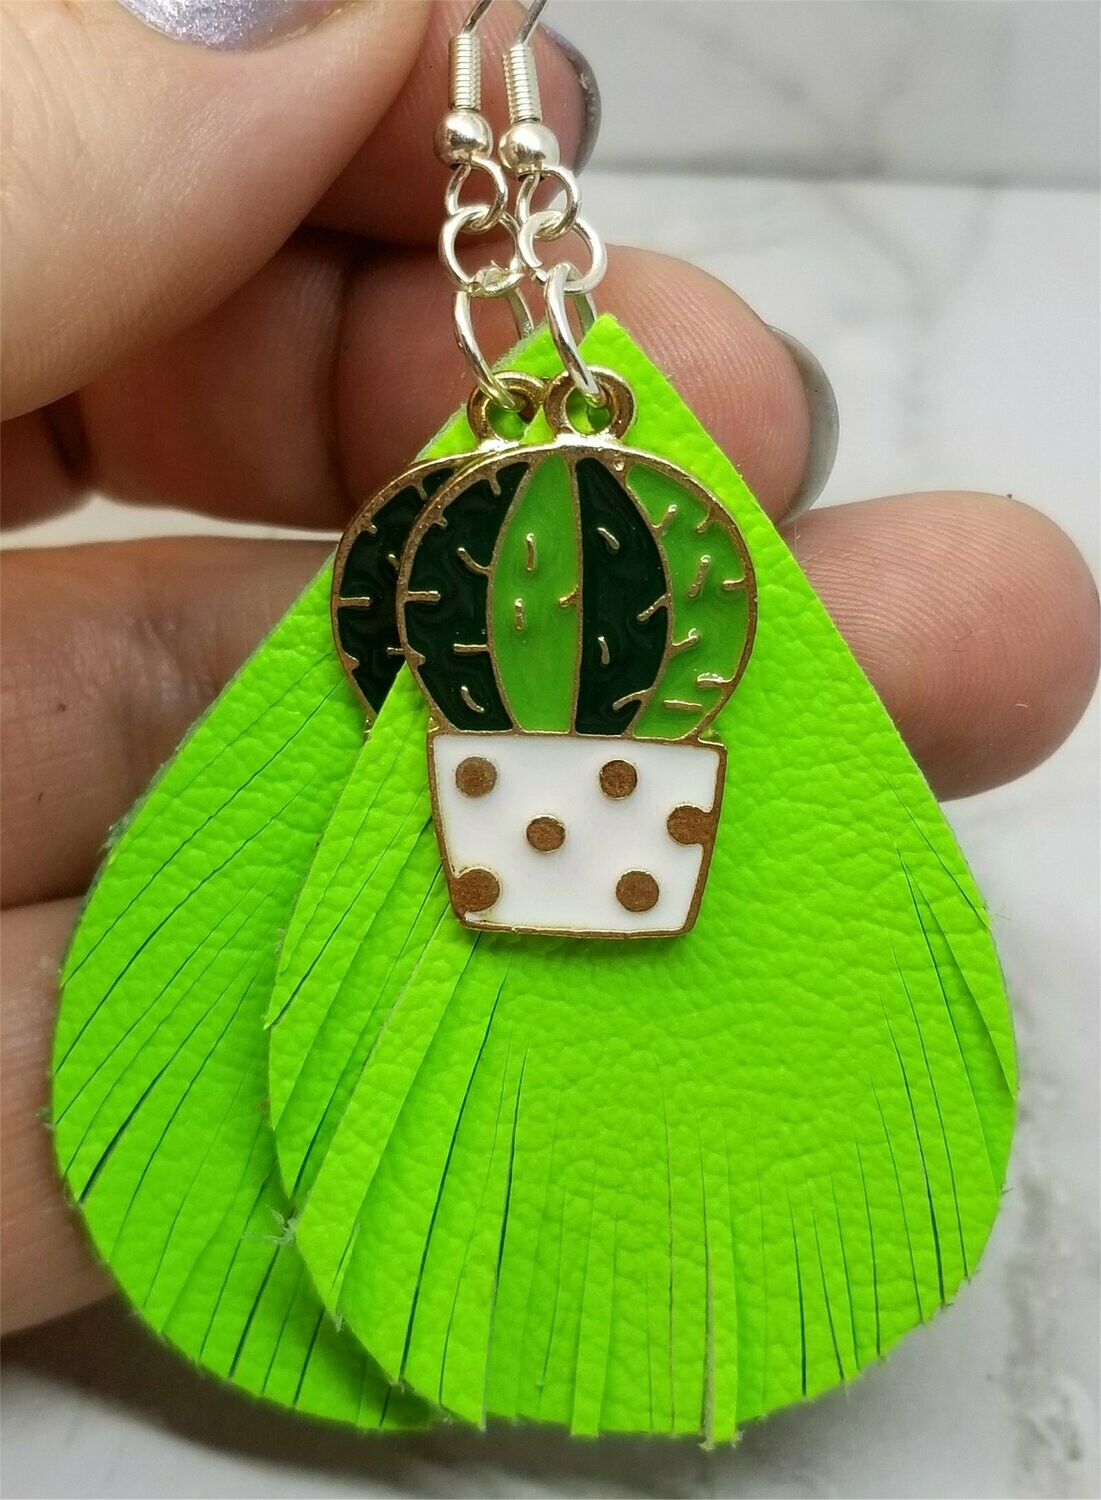 Neon Green Real Leather Fringed Earrings with a Cactus Charm Overlay